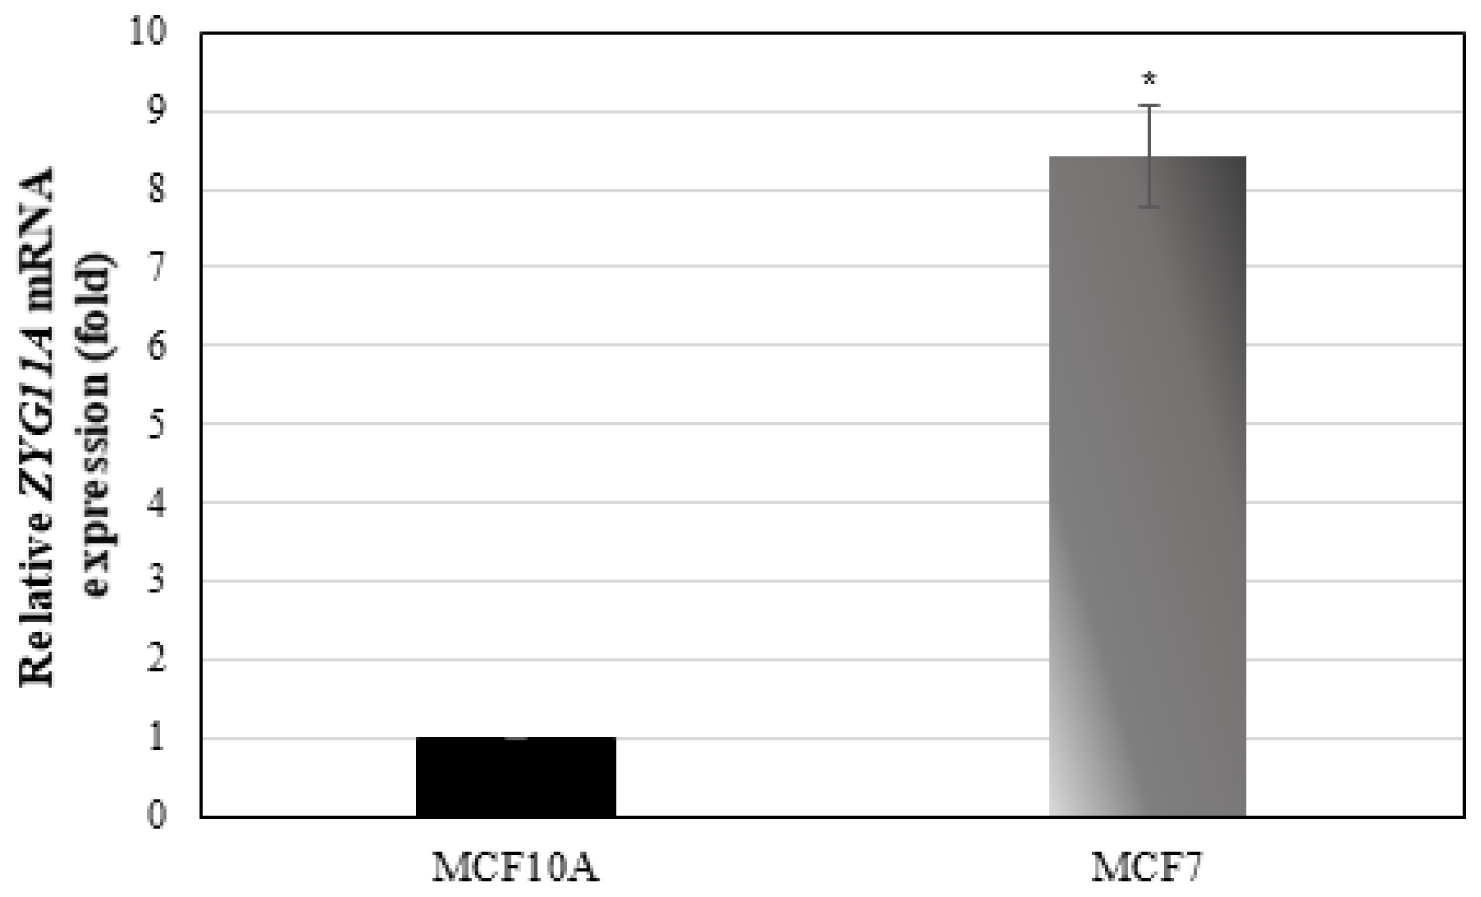 ZYG11A mRNA expression in breast cancer cell lines.